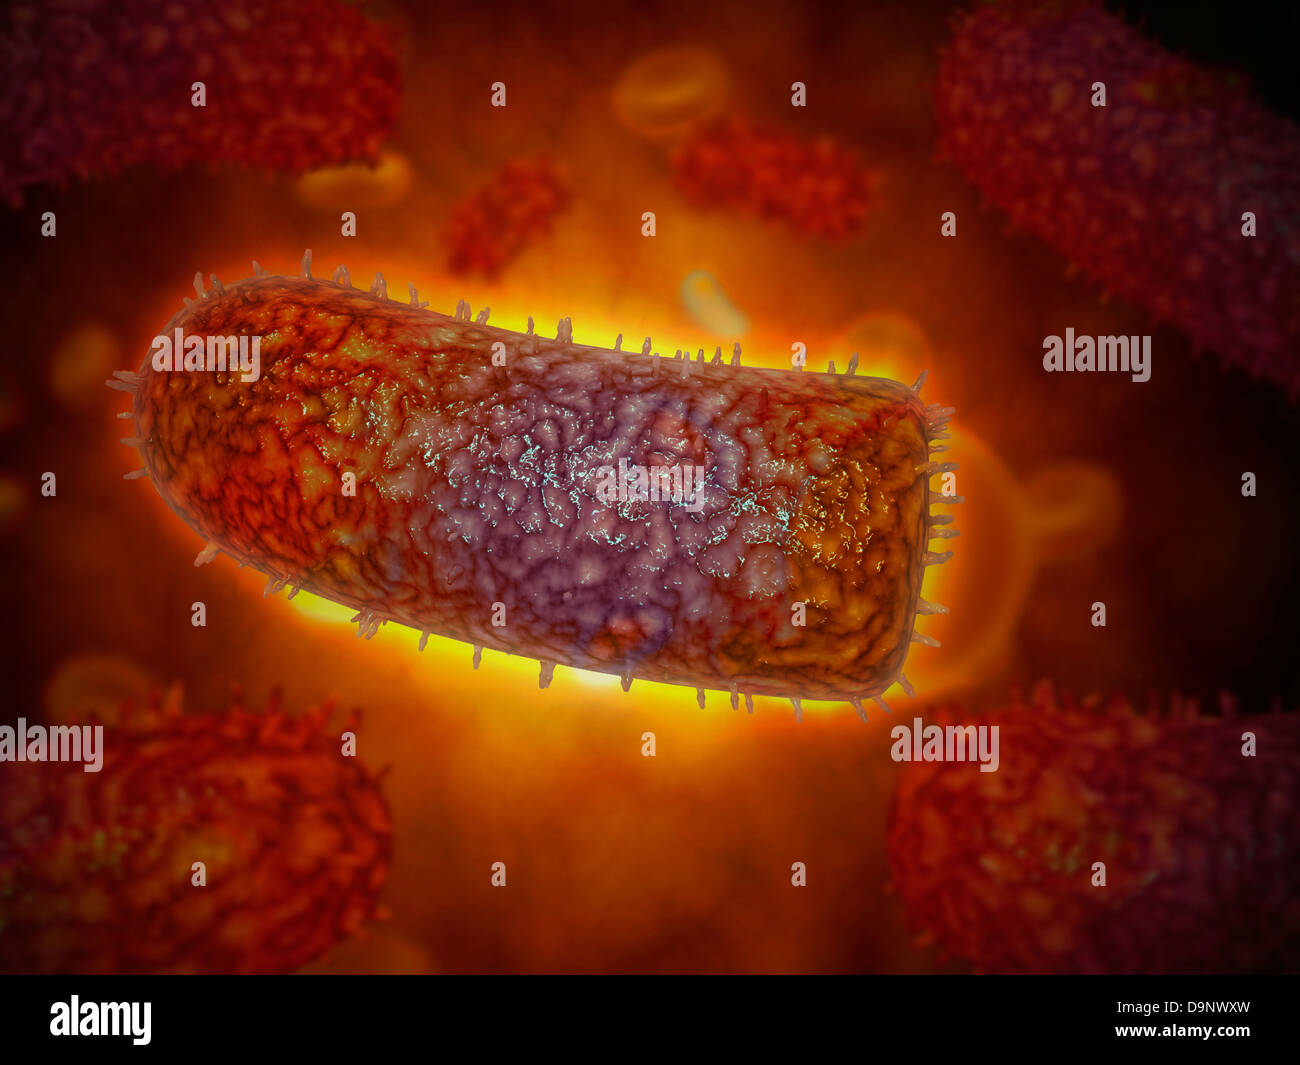 Stylized rabies virus particles, the cause of the viral neuroinvasive disease acute encephalitis. - Stock Image